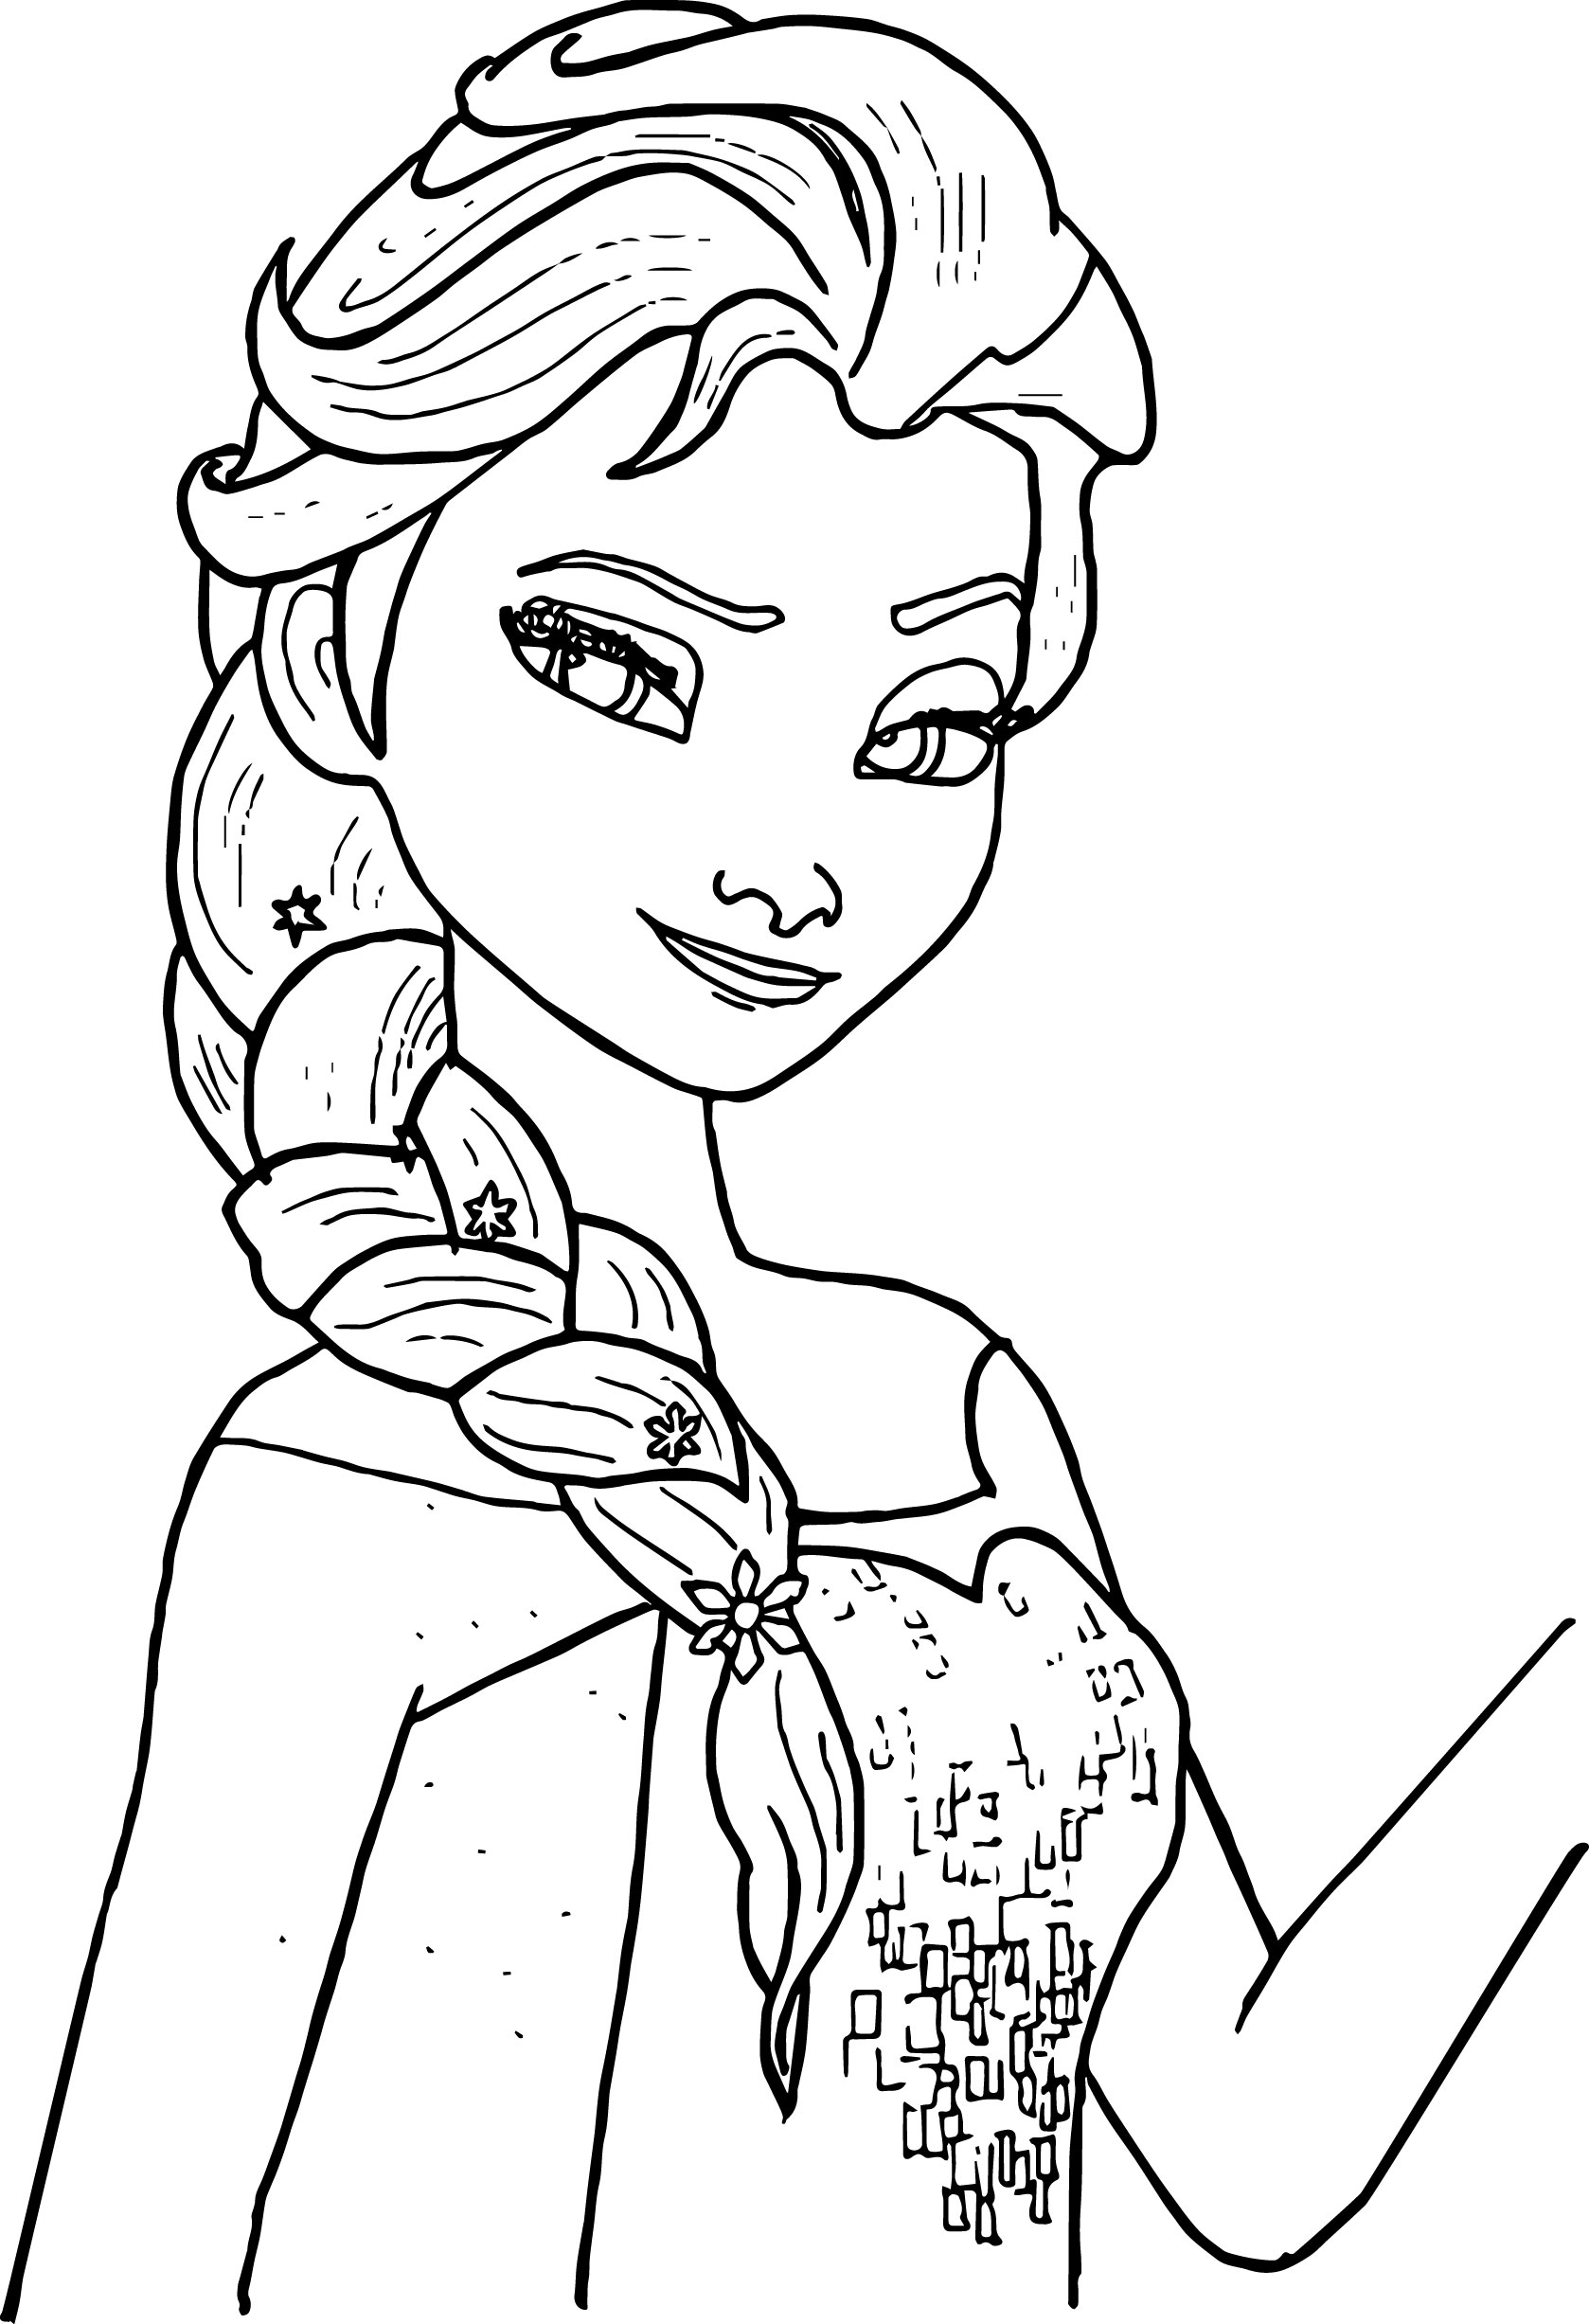 Remarkable Elsa Coloring Pages Free Photo Ideas – Greatestcomicbook